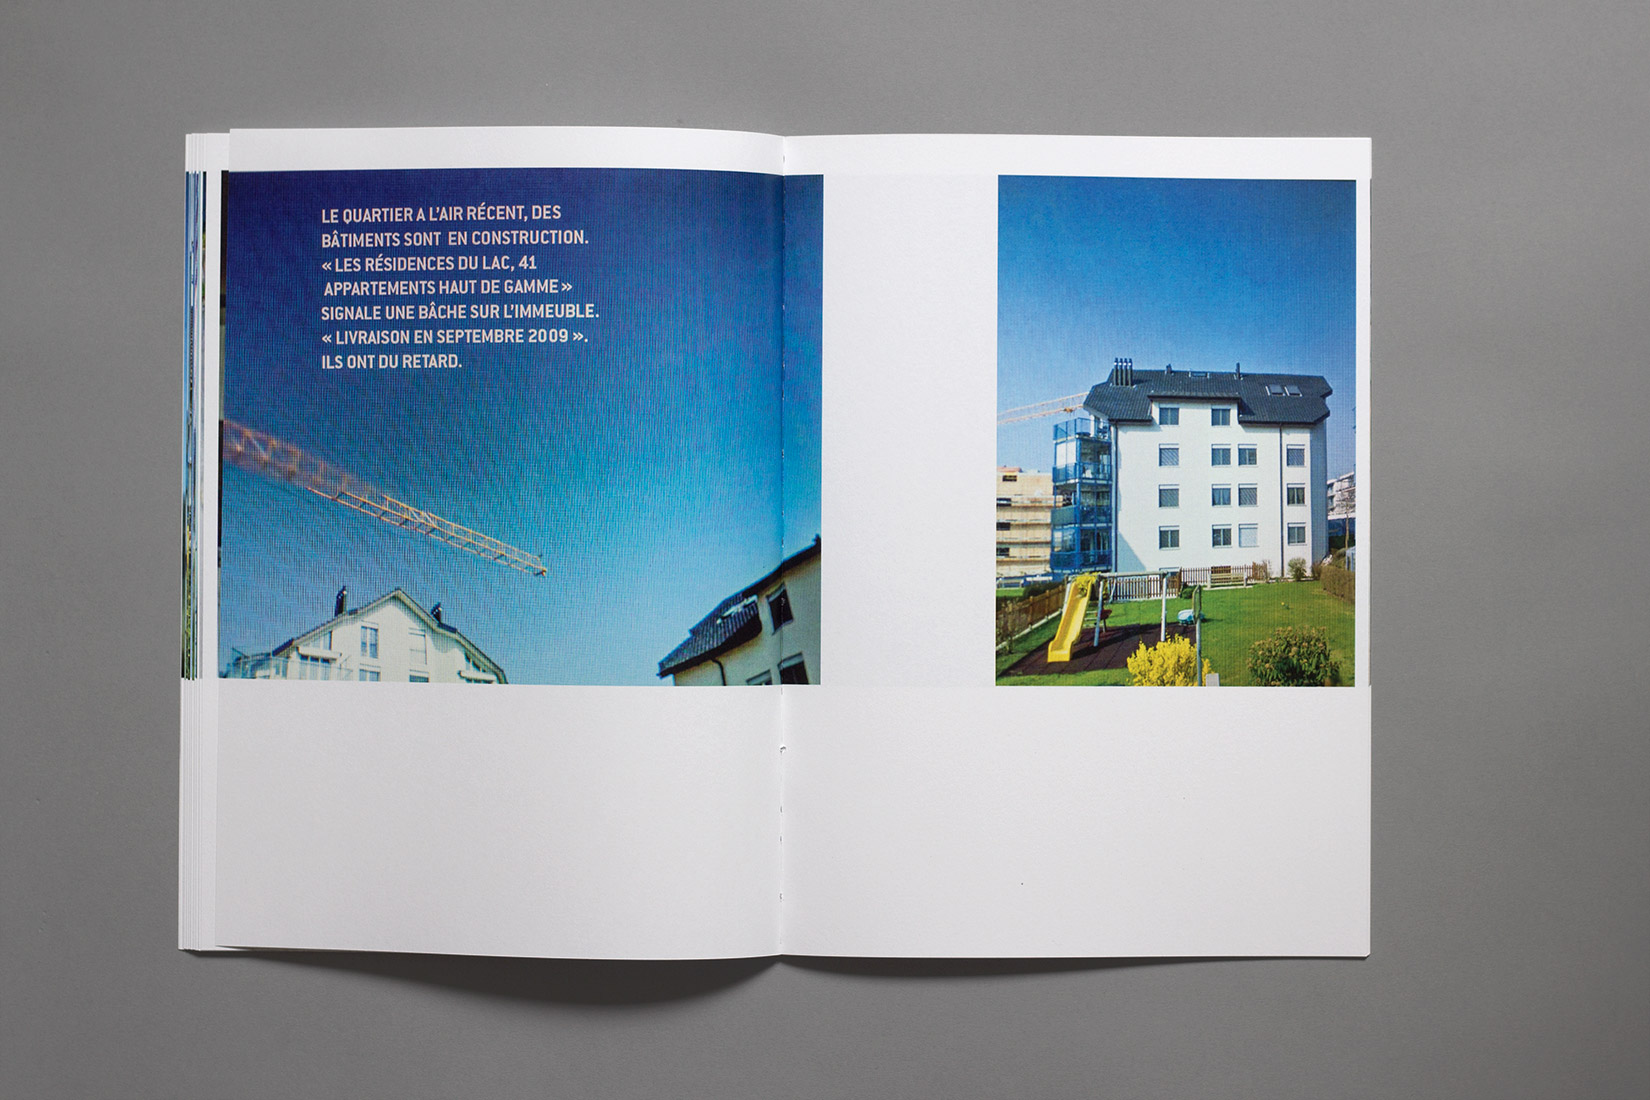 La Neuveville, construction crane, book, Google Street View, photography